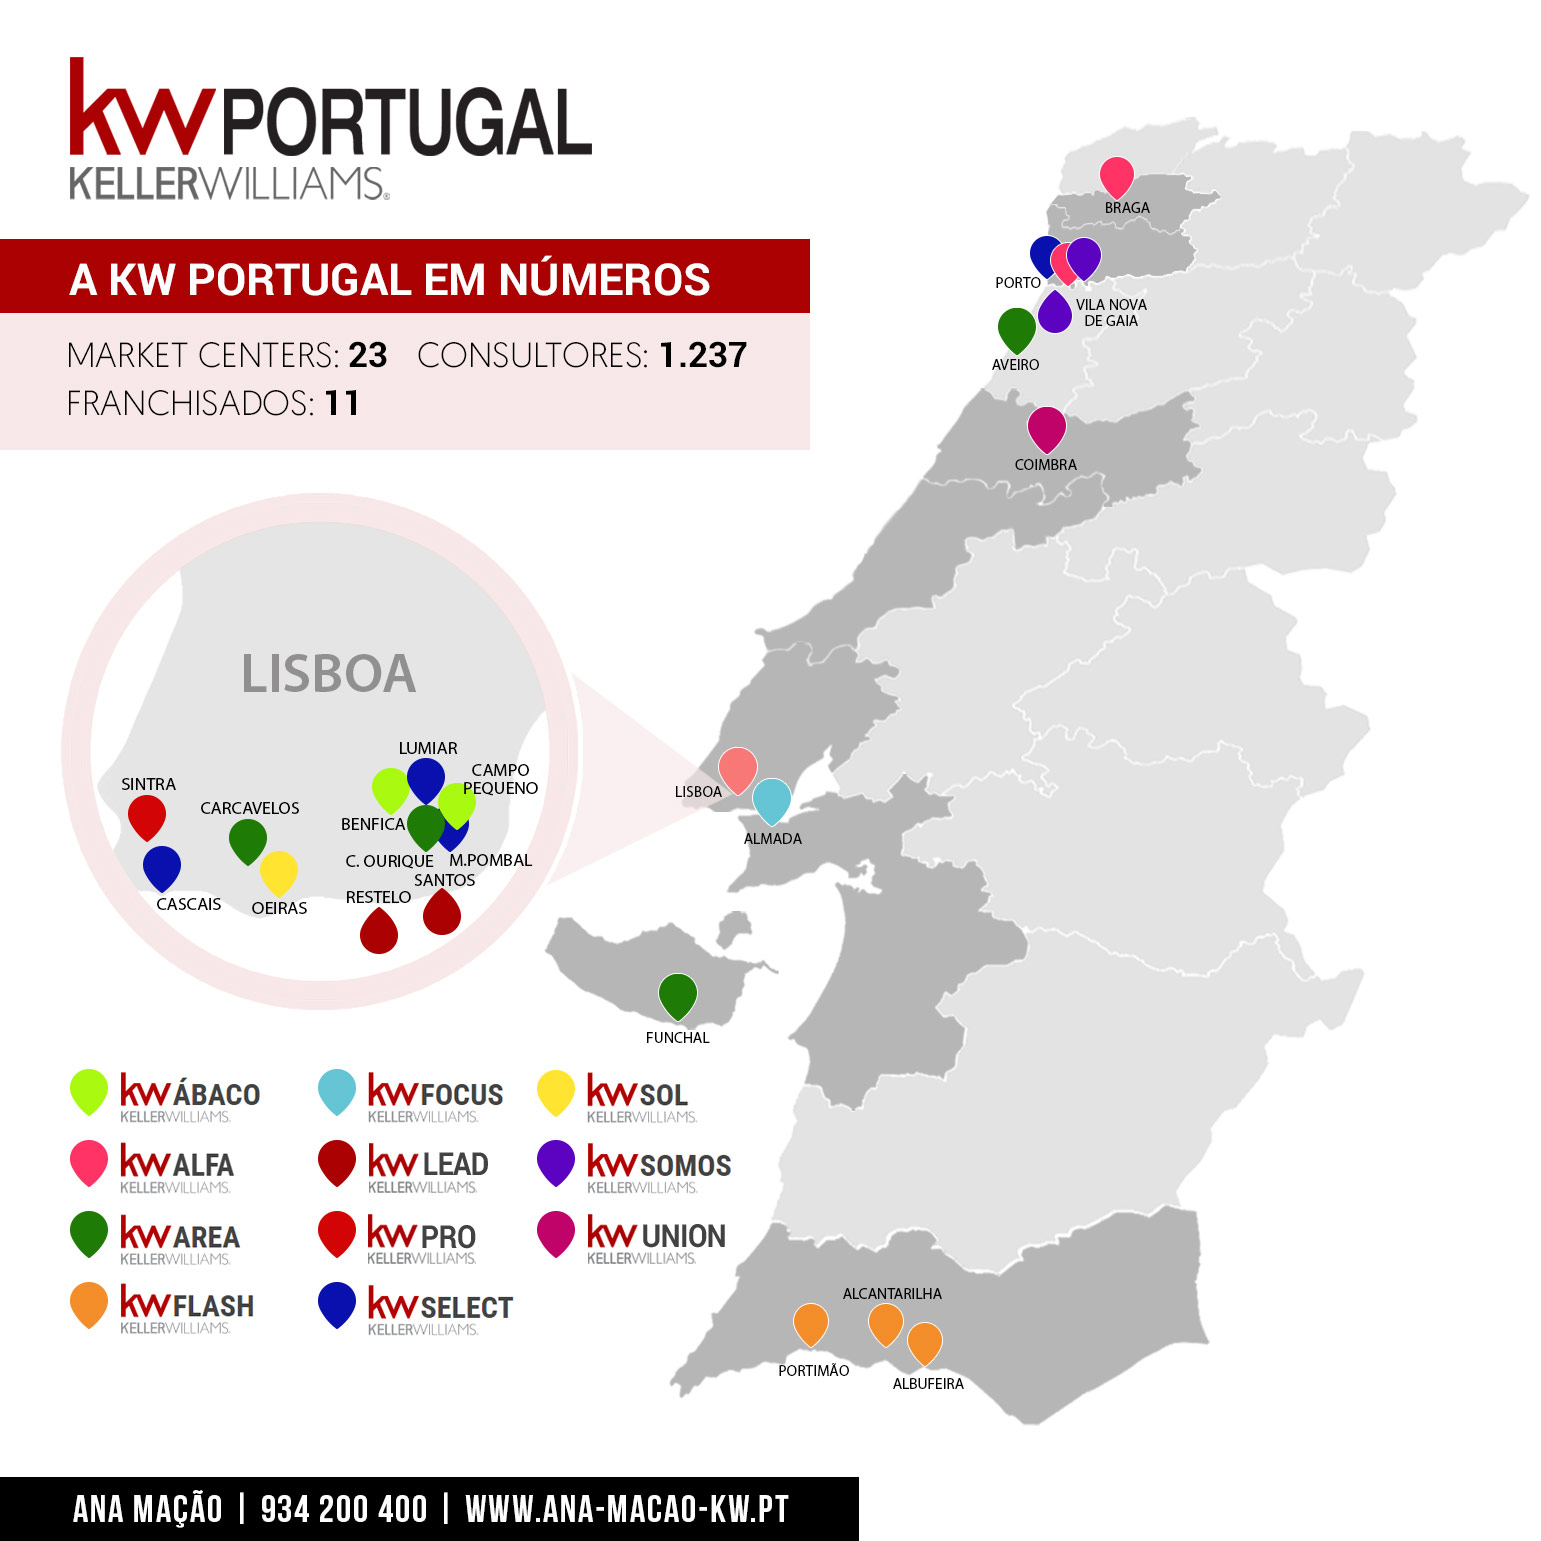 KW Portugal Franchisees and Market Centers Map - Sept. 2019